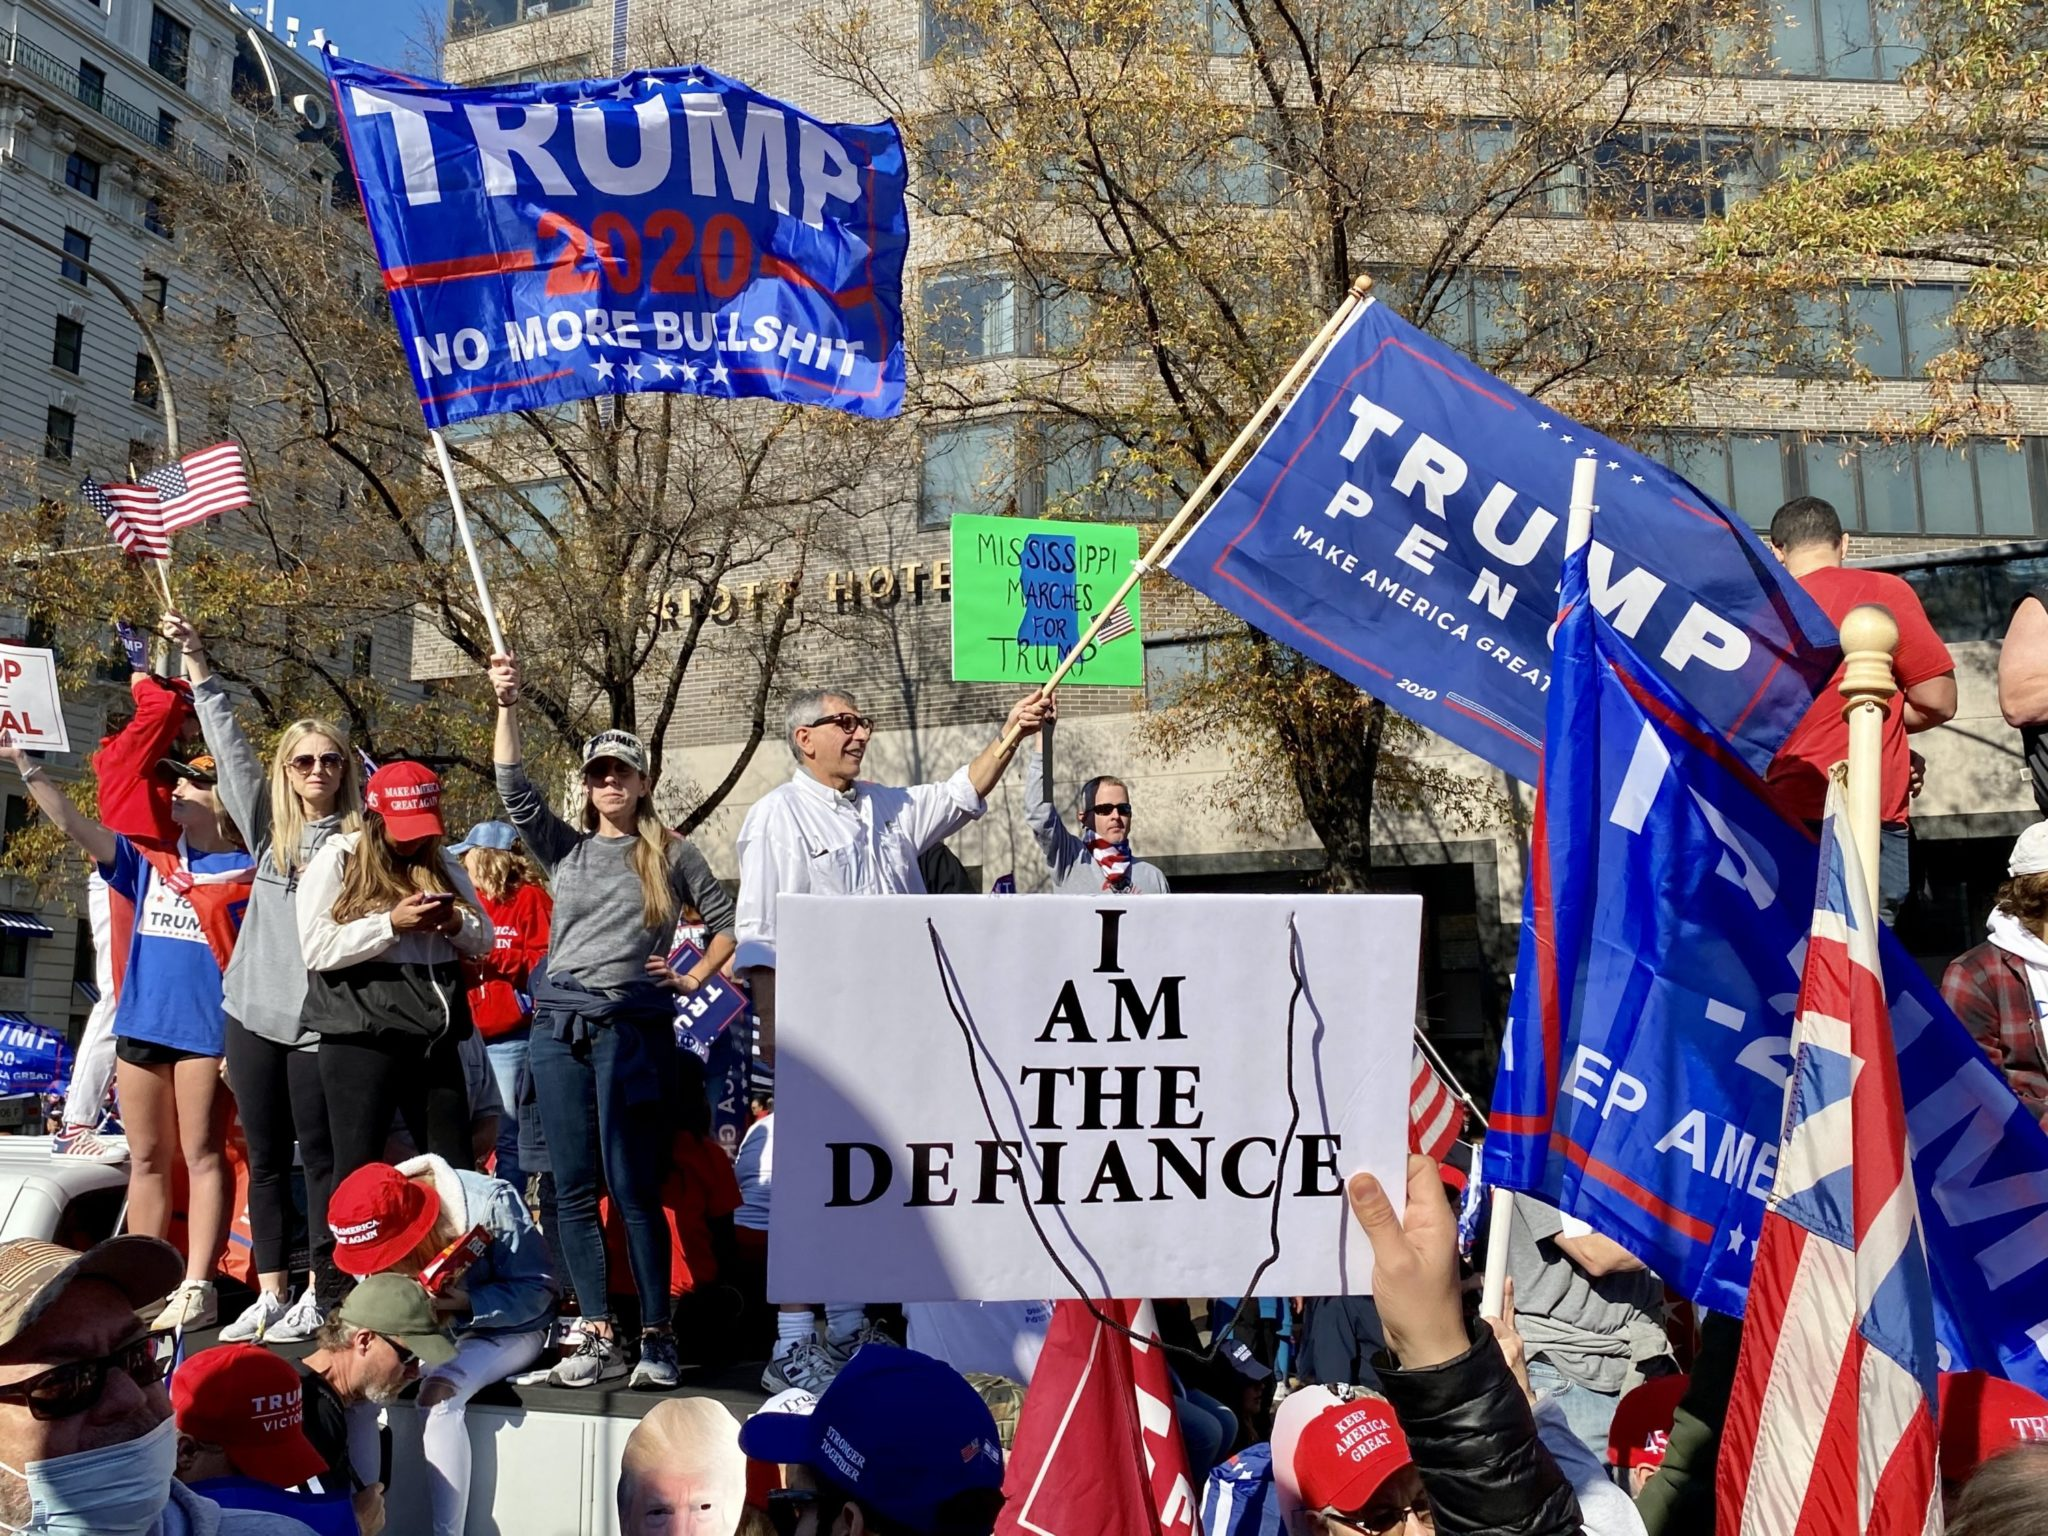 The Million MAGA March on November 14, 2020. Photograph by Evy Mages.